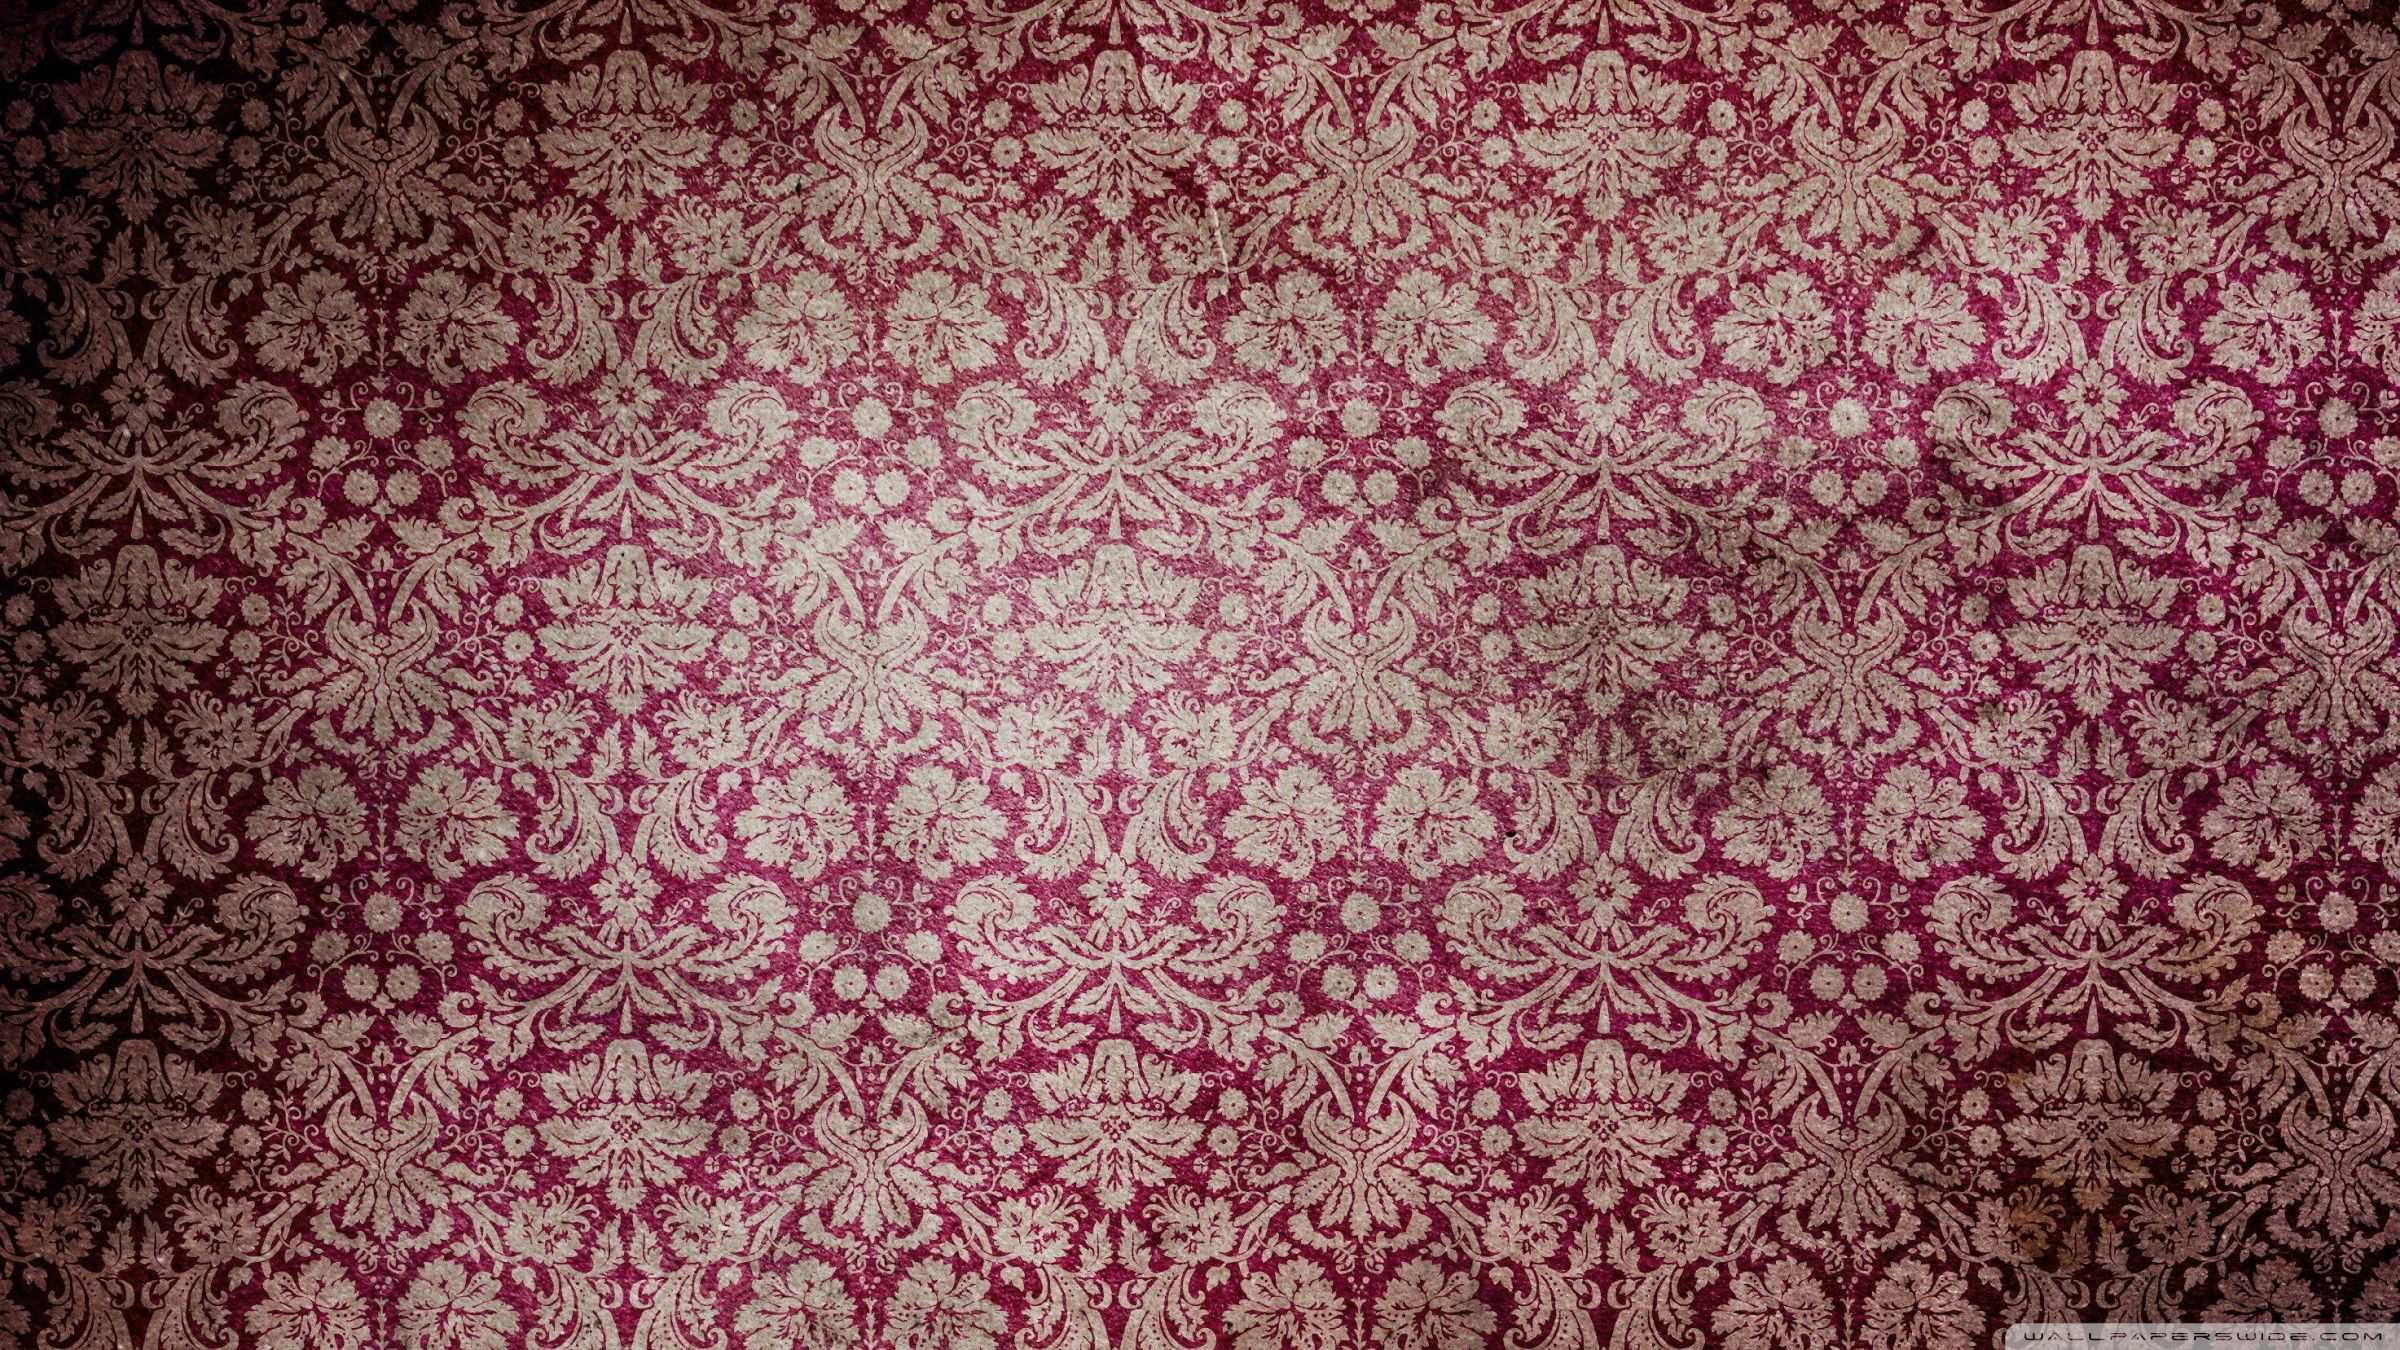 This Style Of Wallpaper In Red Was Very Popular In The Late Victorian Period Retro Wallpaper Victorian Wallpaper Wallpapers Vintage